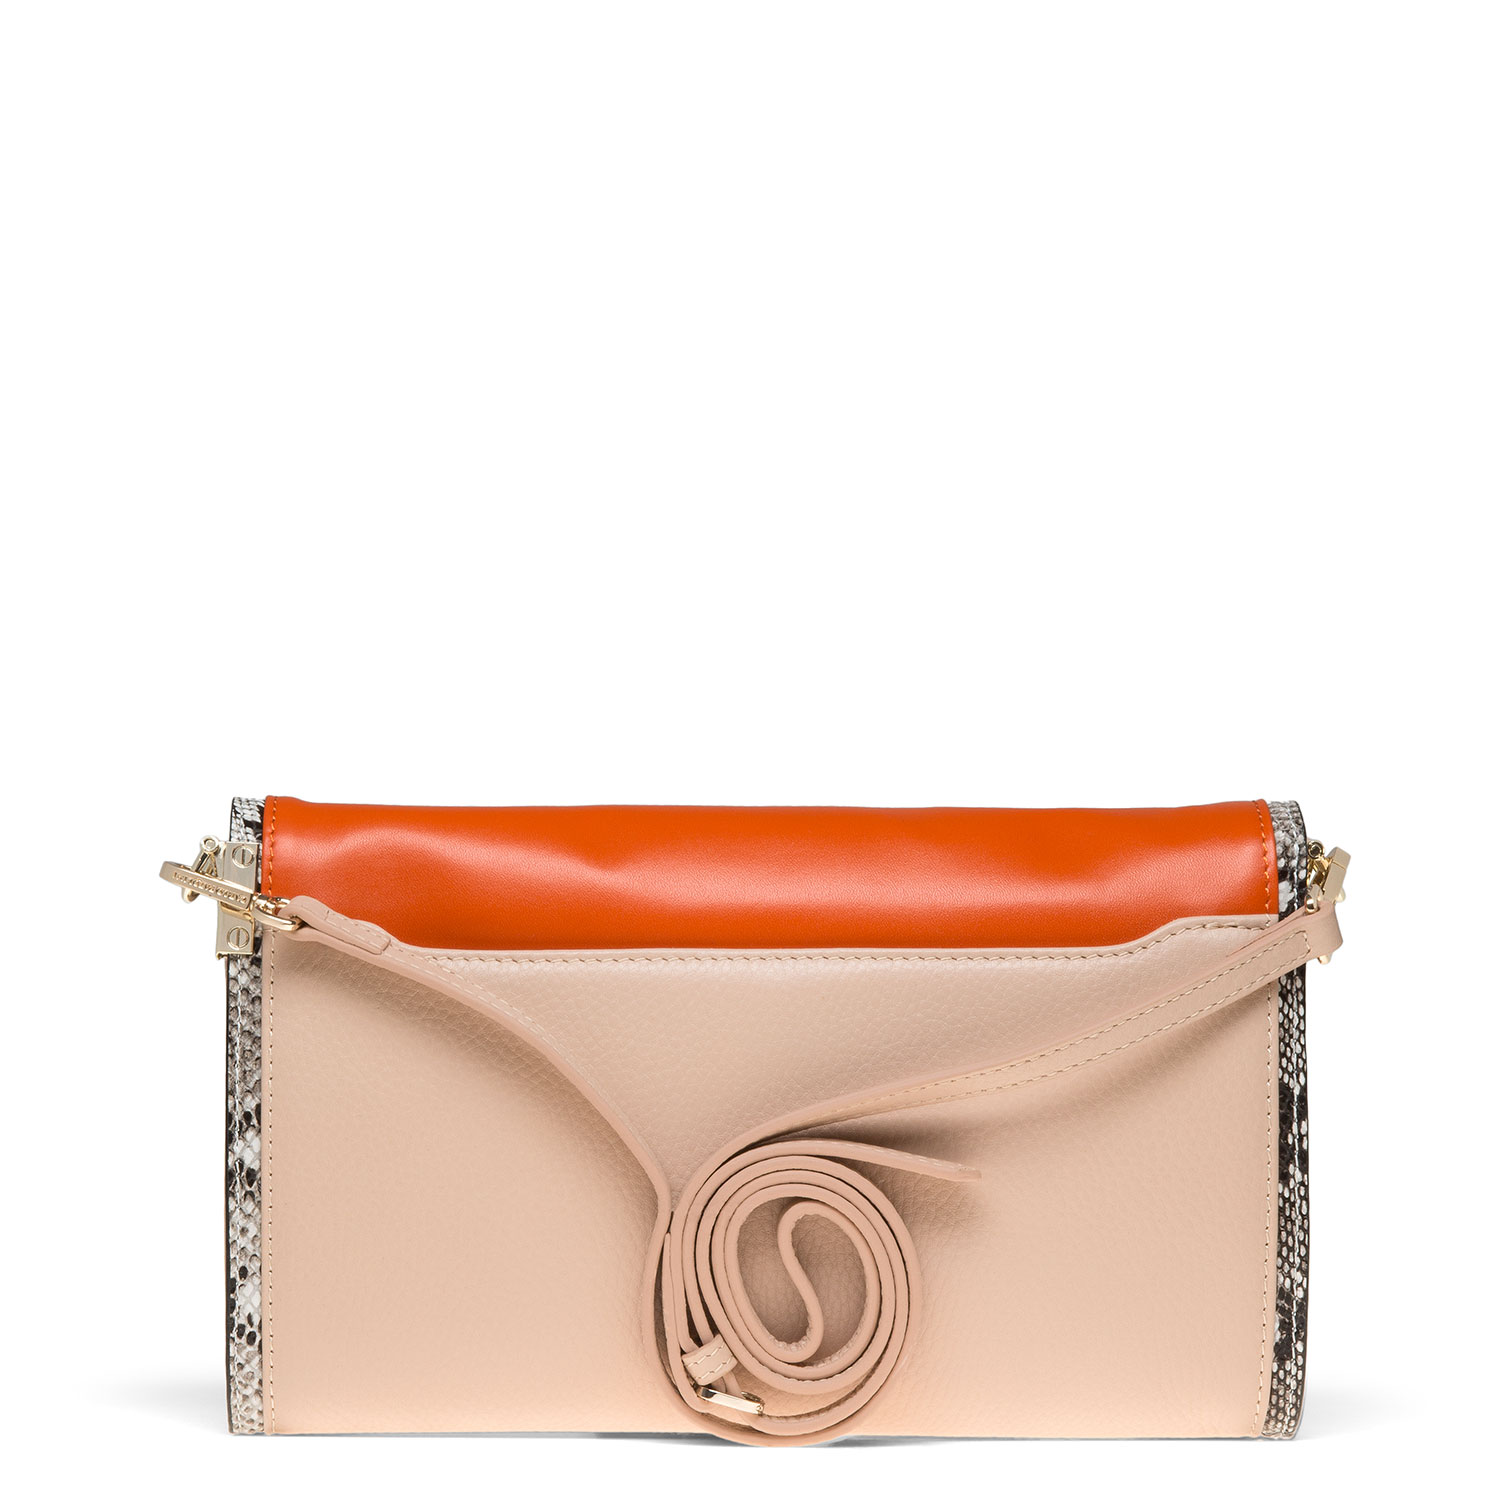 Women's bag CARLO PAZOLINI PS-N1166-15